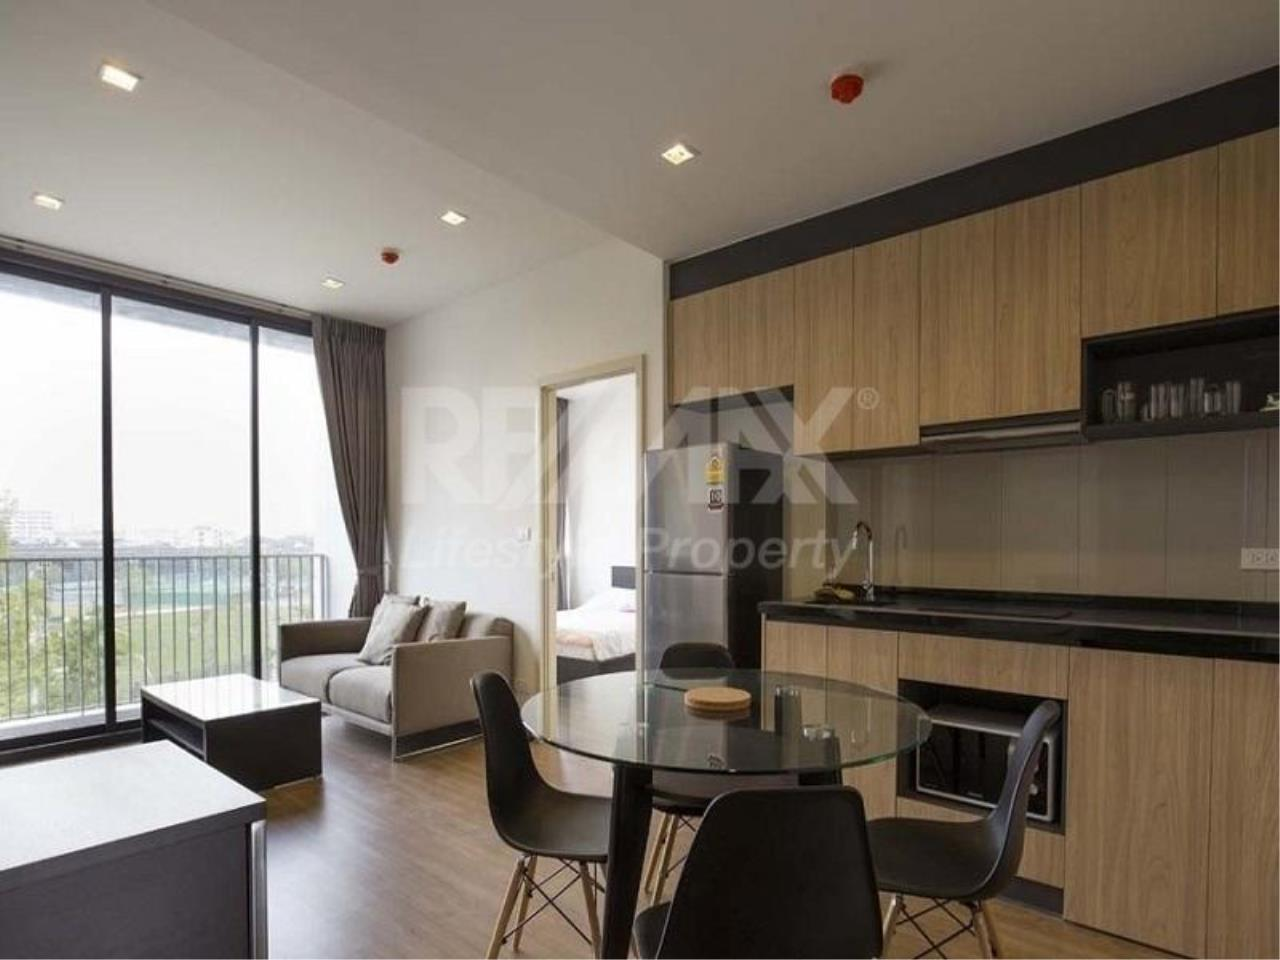 RE/MAX LifeStyle Property Agency's Hasu Haus 3